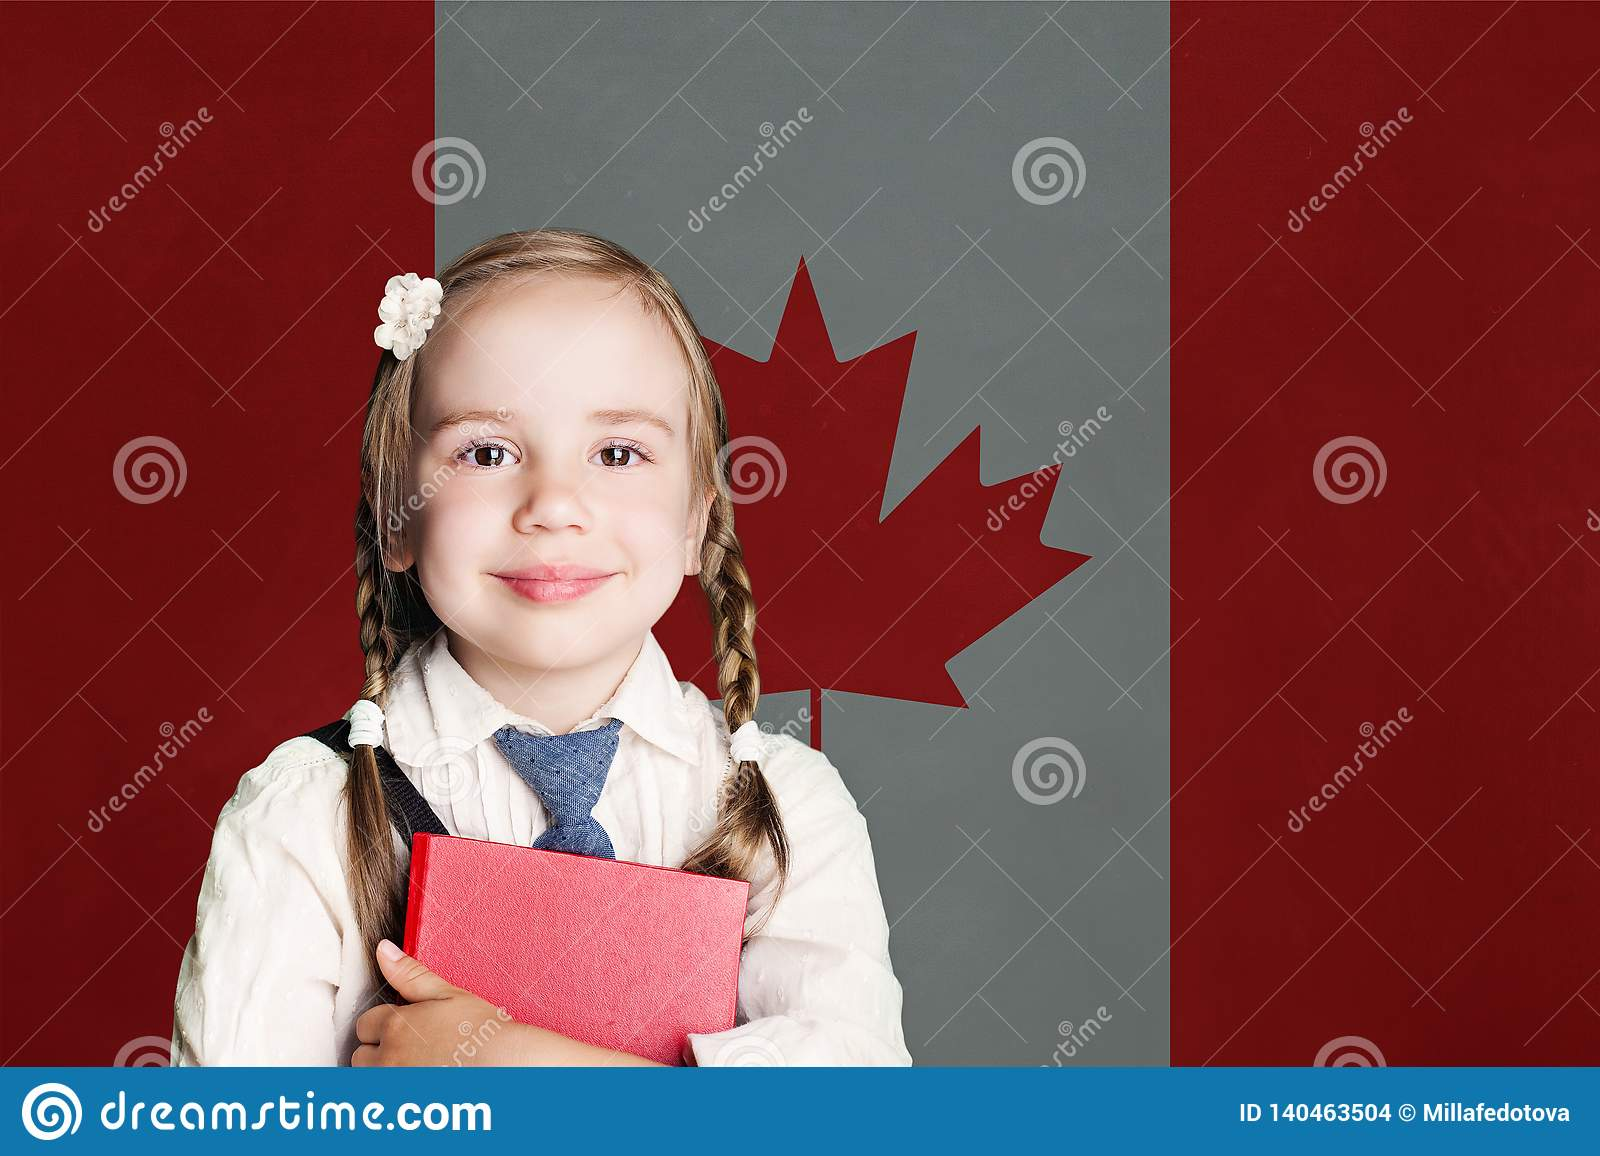 Canada concept with happy child girl in school uniform with book against the Canadian flag background